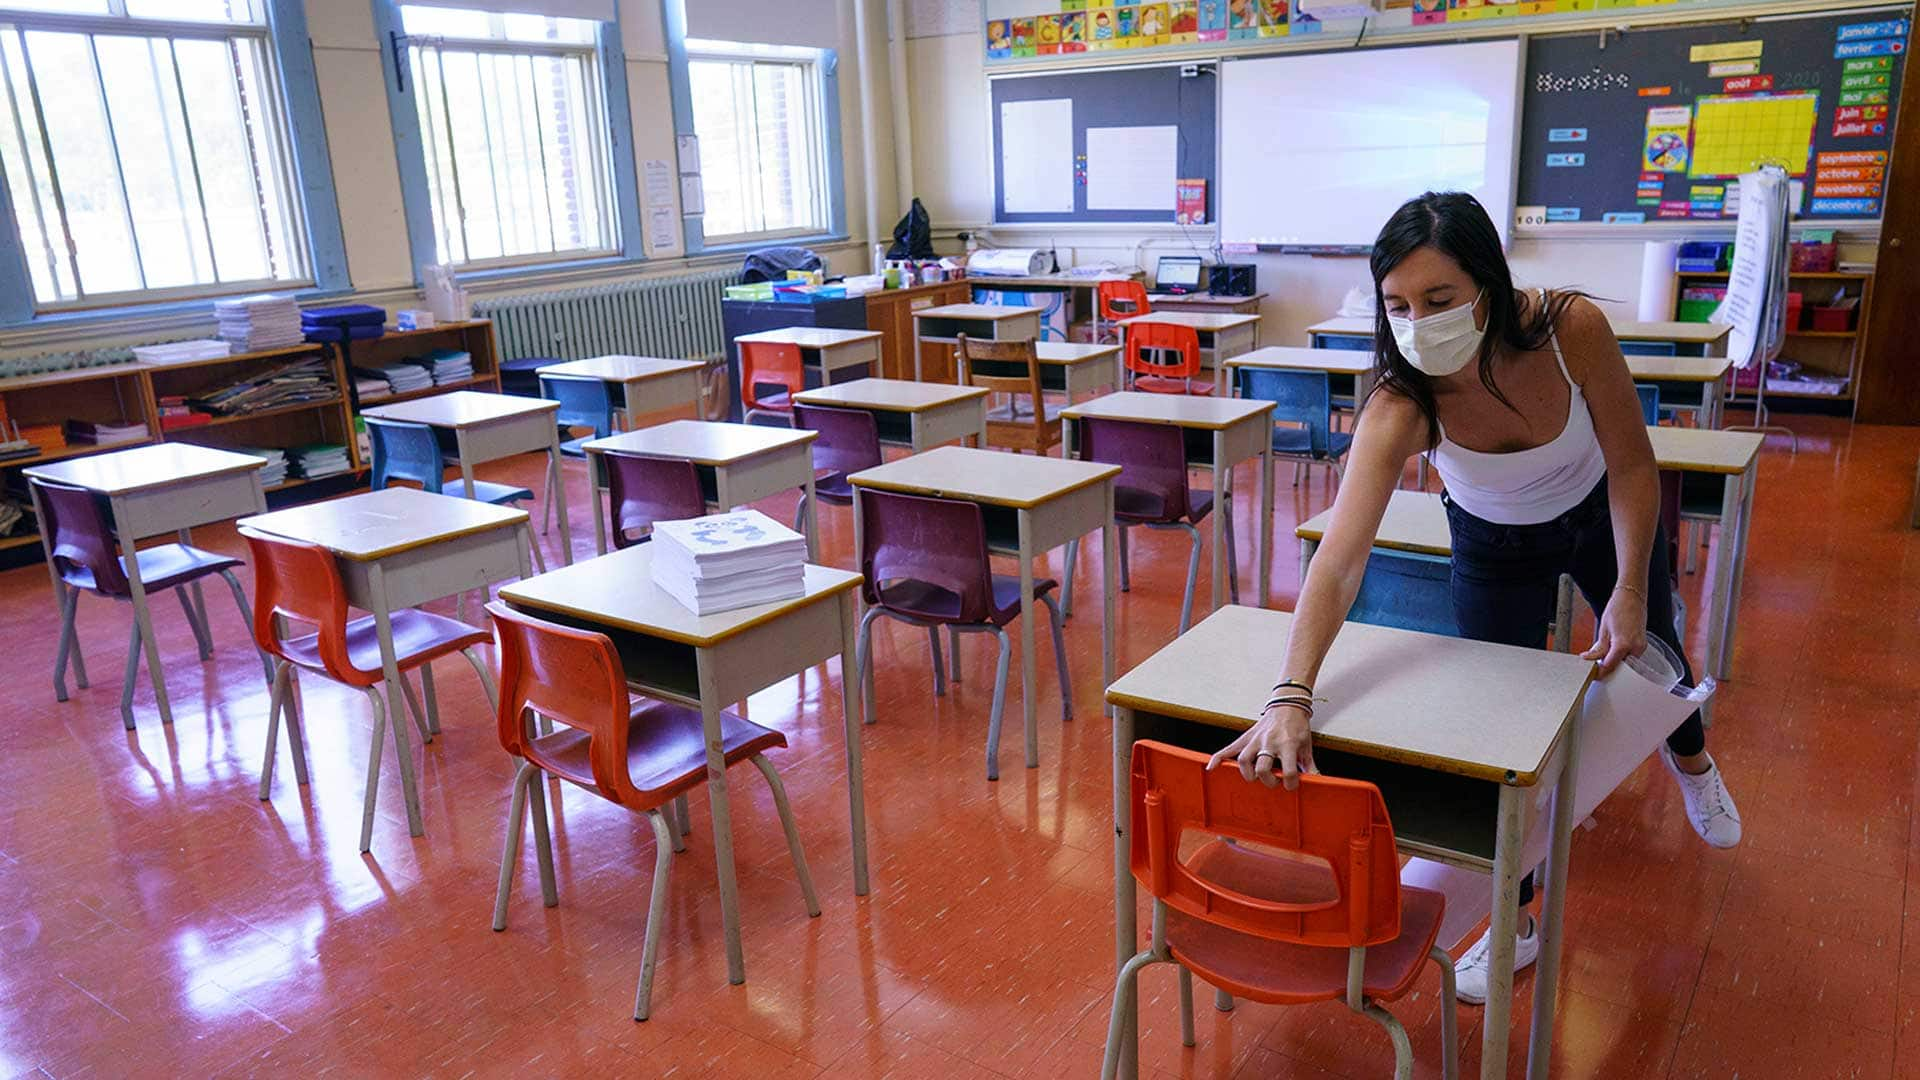 Schools have largely stayed available towards COVID-19, but experts warn of winter flu season ahead thumbnail